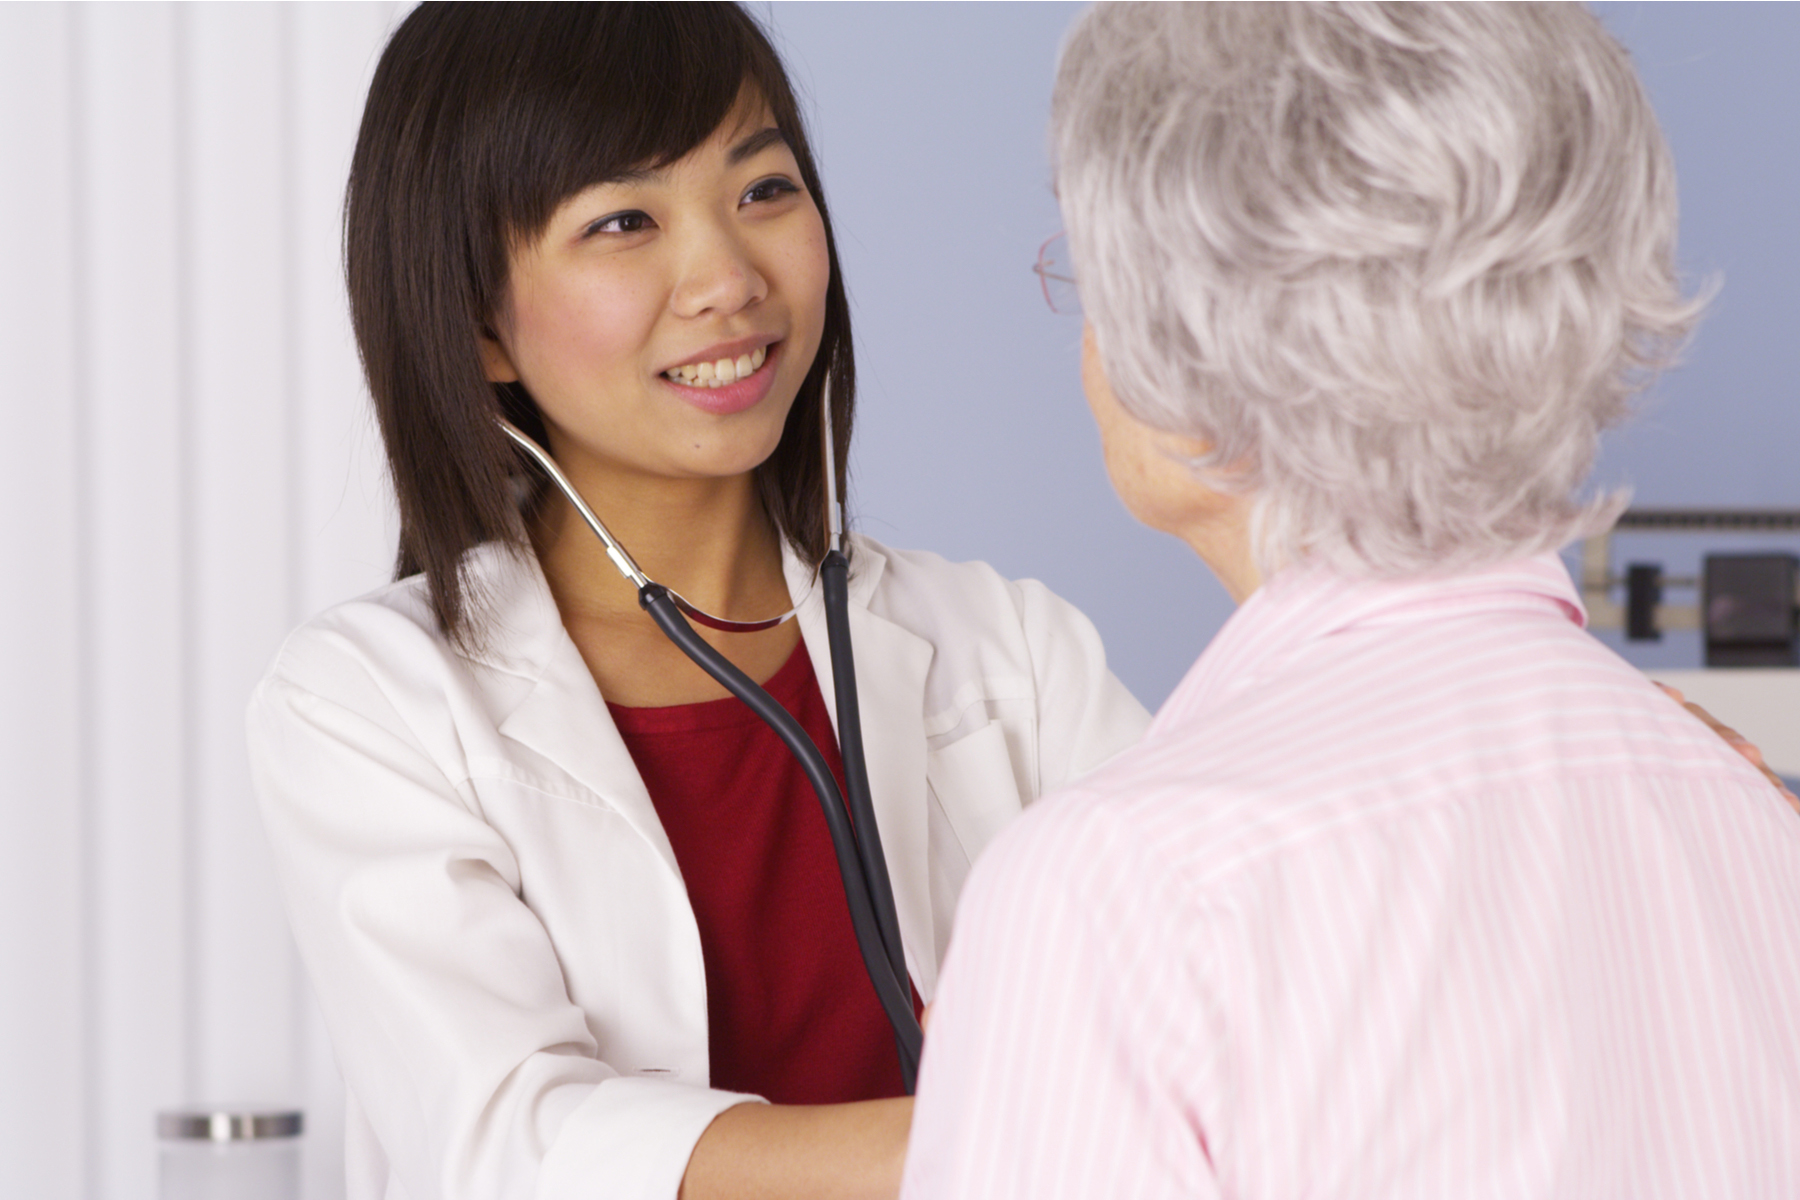 Doctor with a menopausal patient